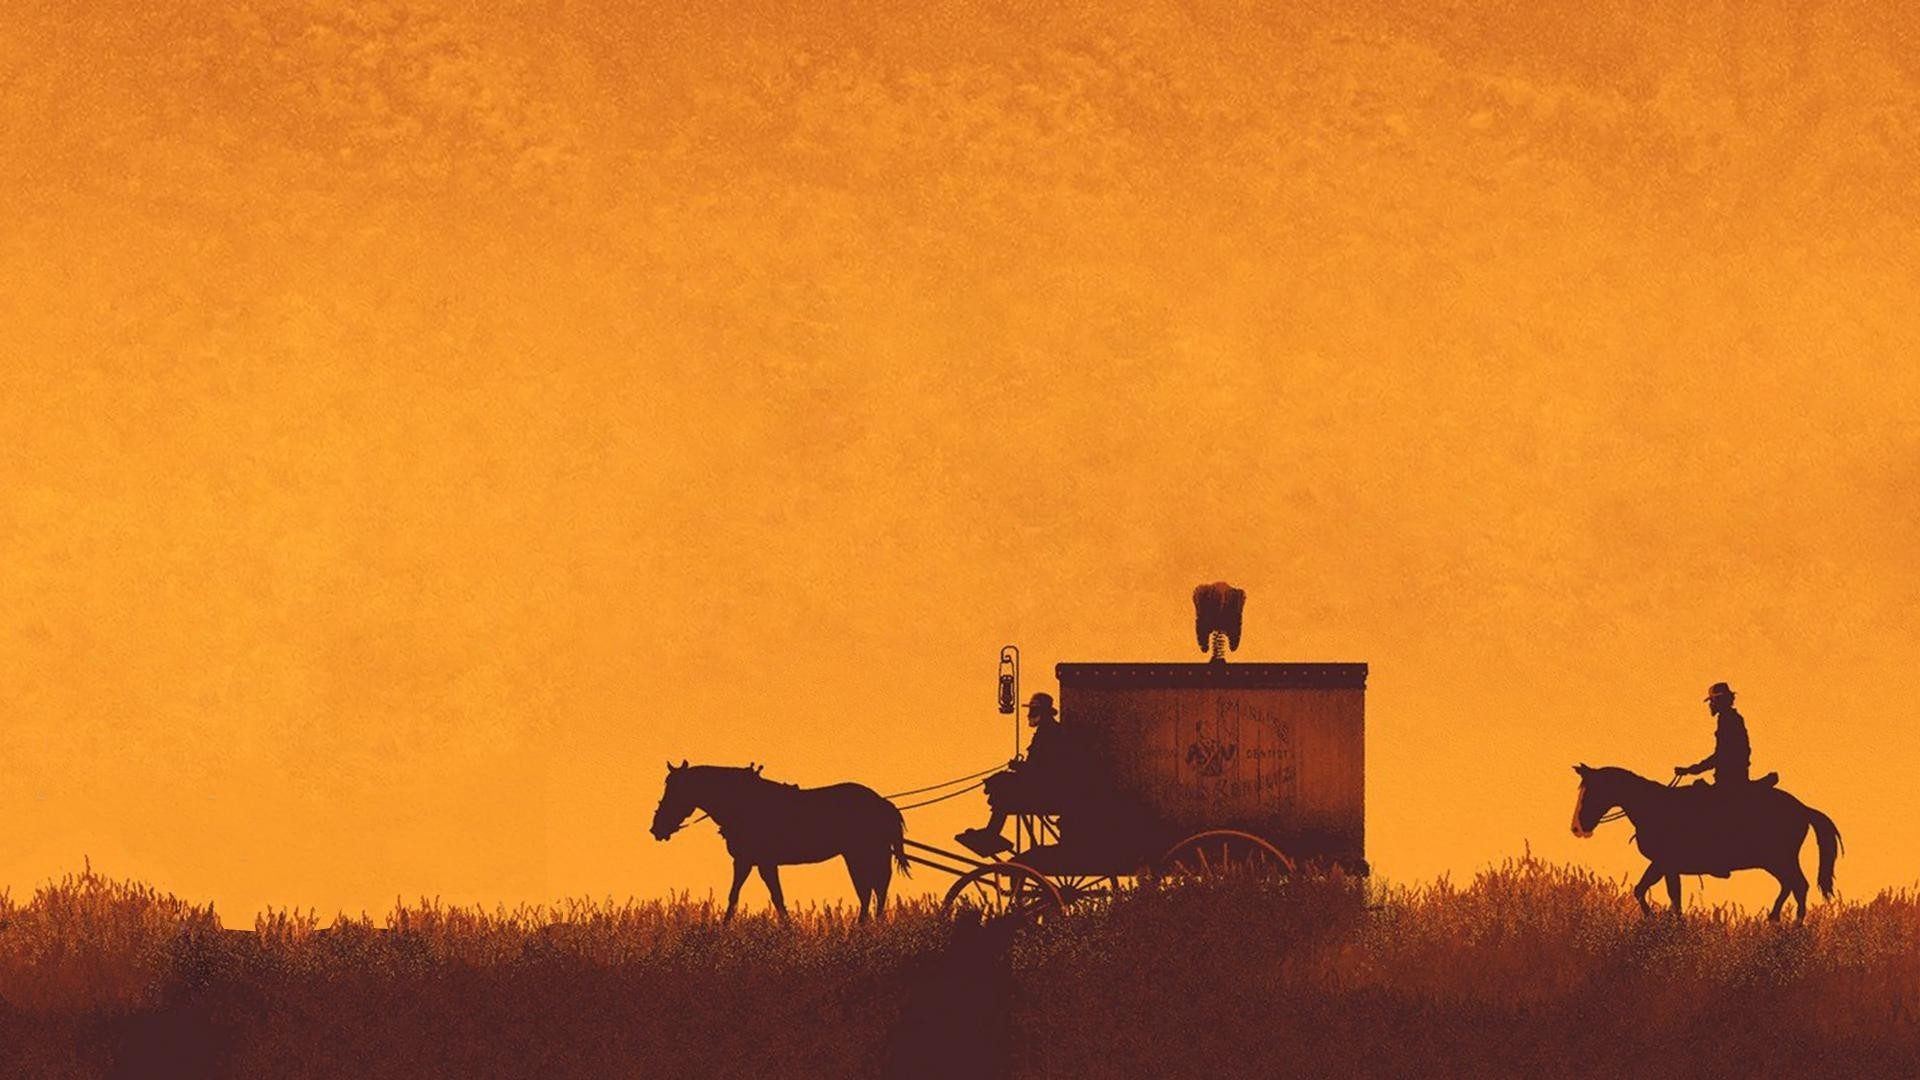 1920x1080 <b>Old West</b> Outlaws <b>Wallpaper</